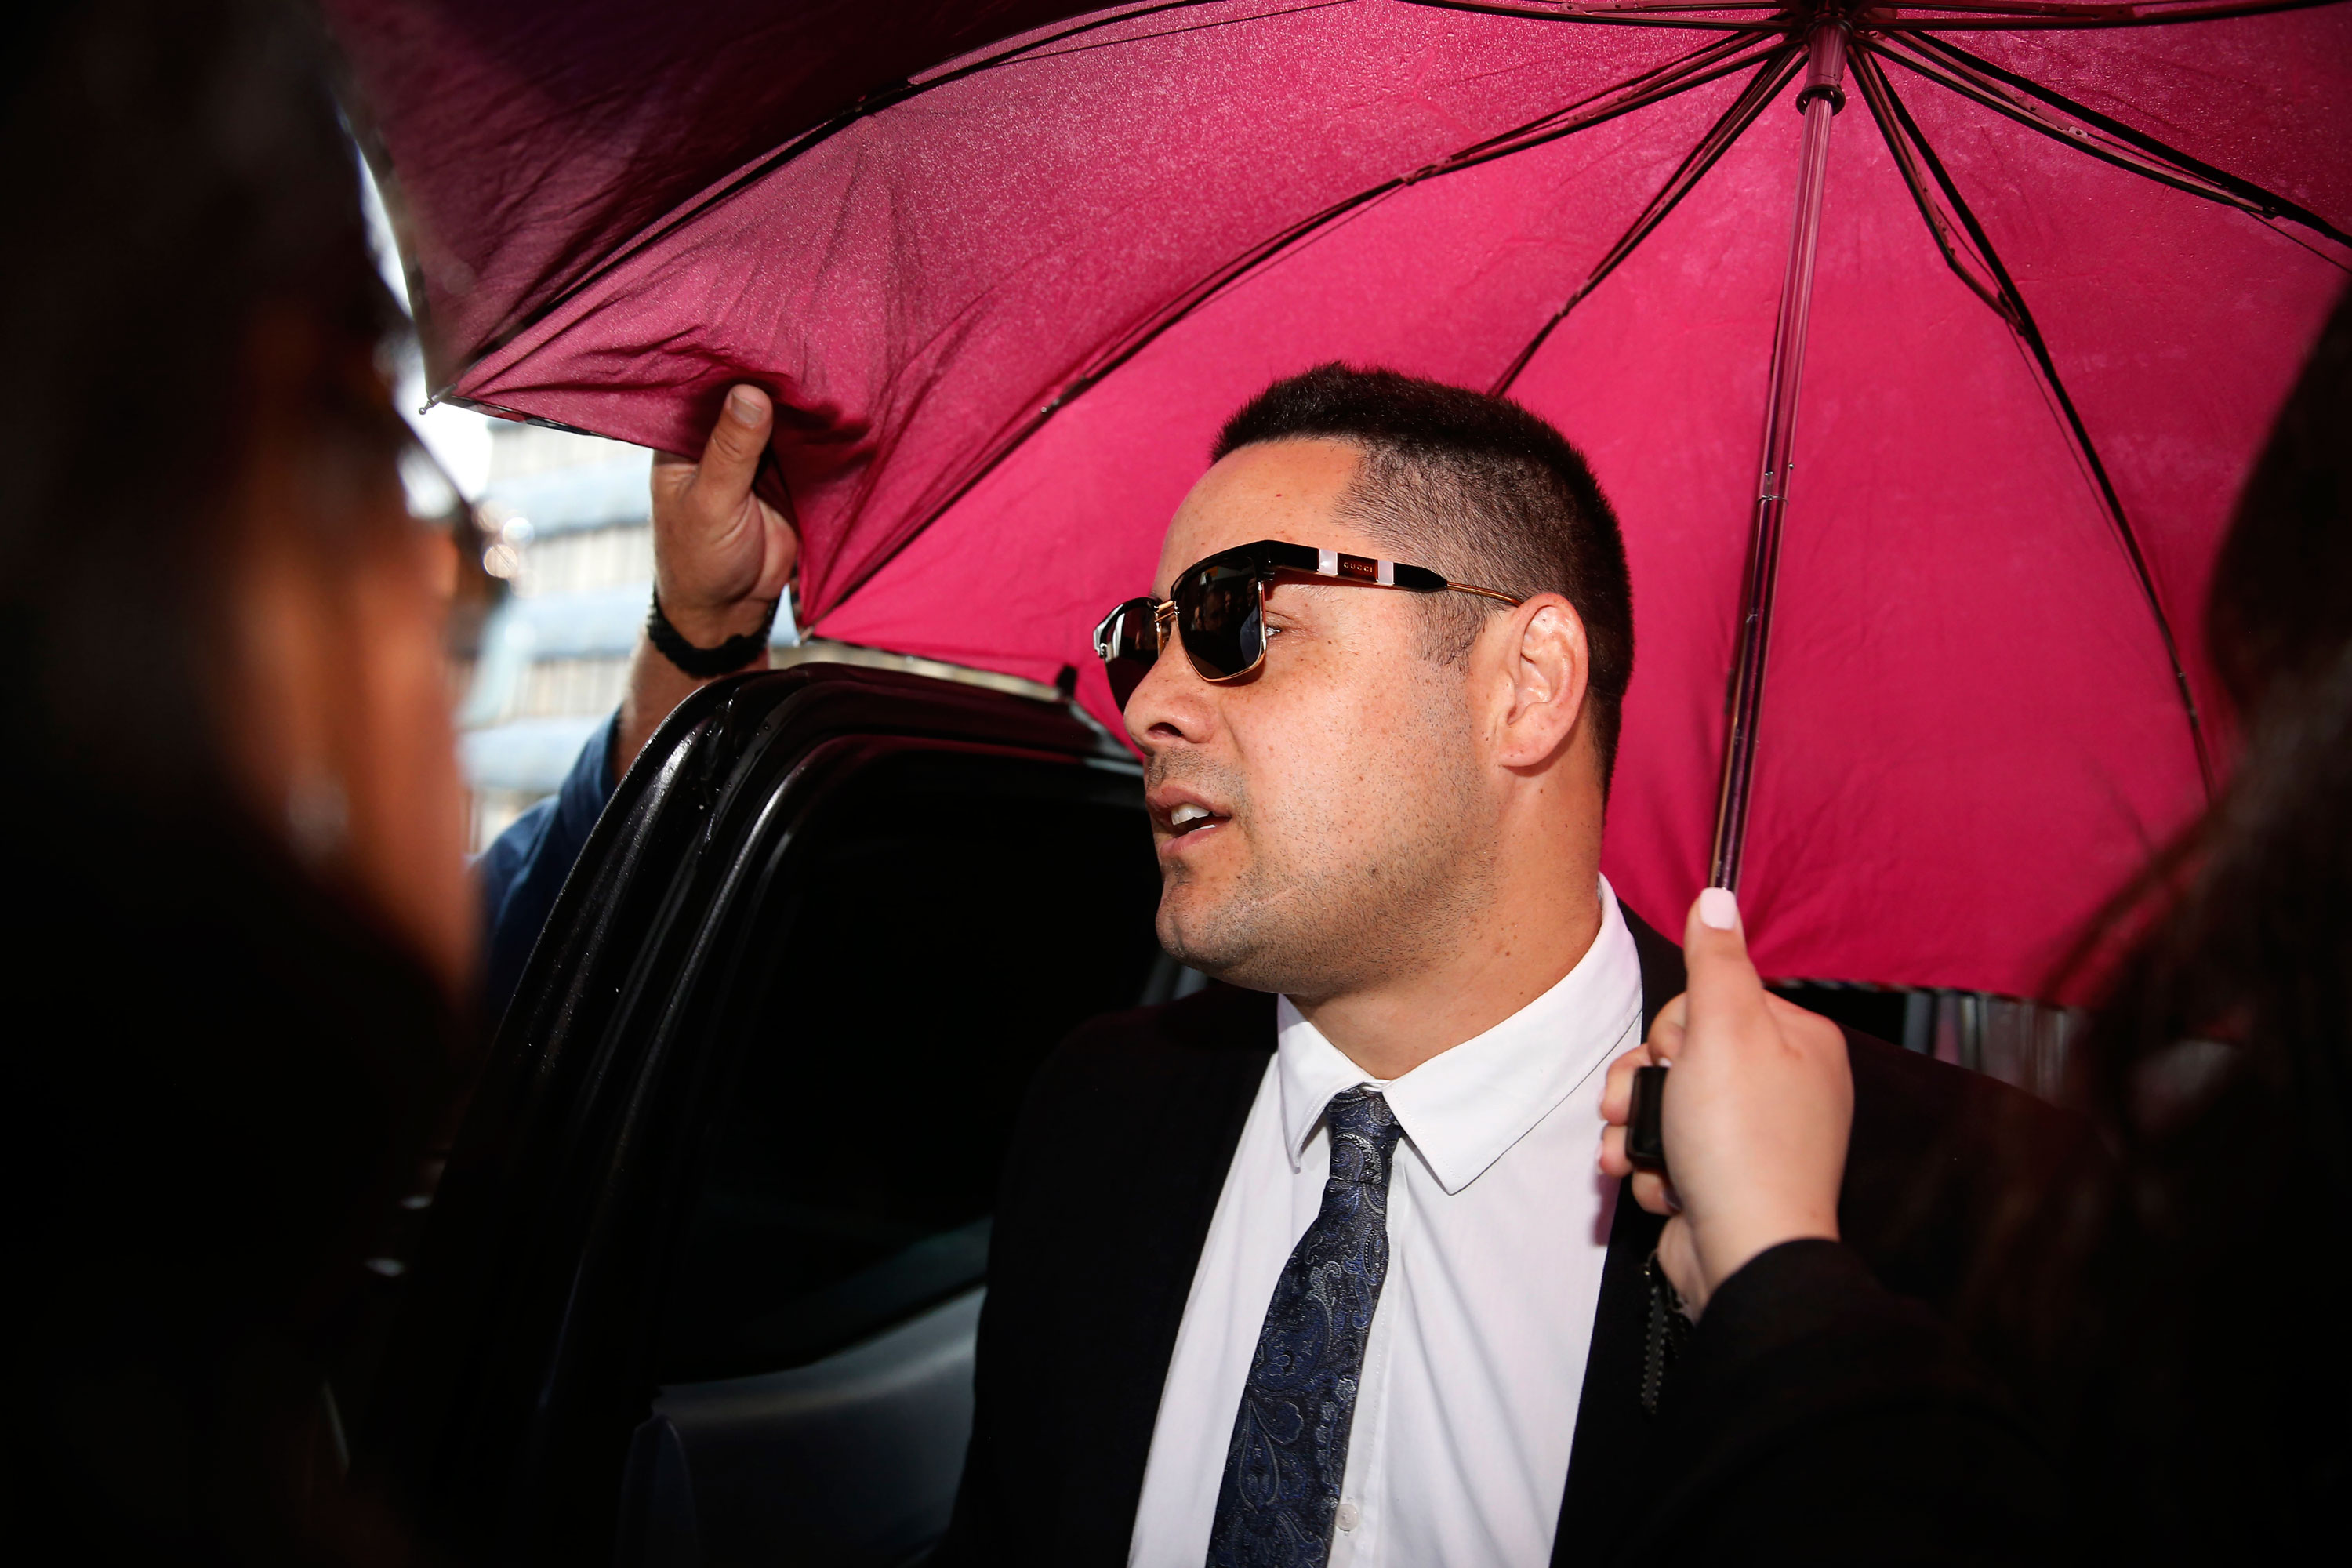 Jarryd Hayne, former Australian rugby league international, jailed for sexual assault